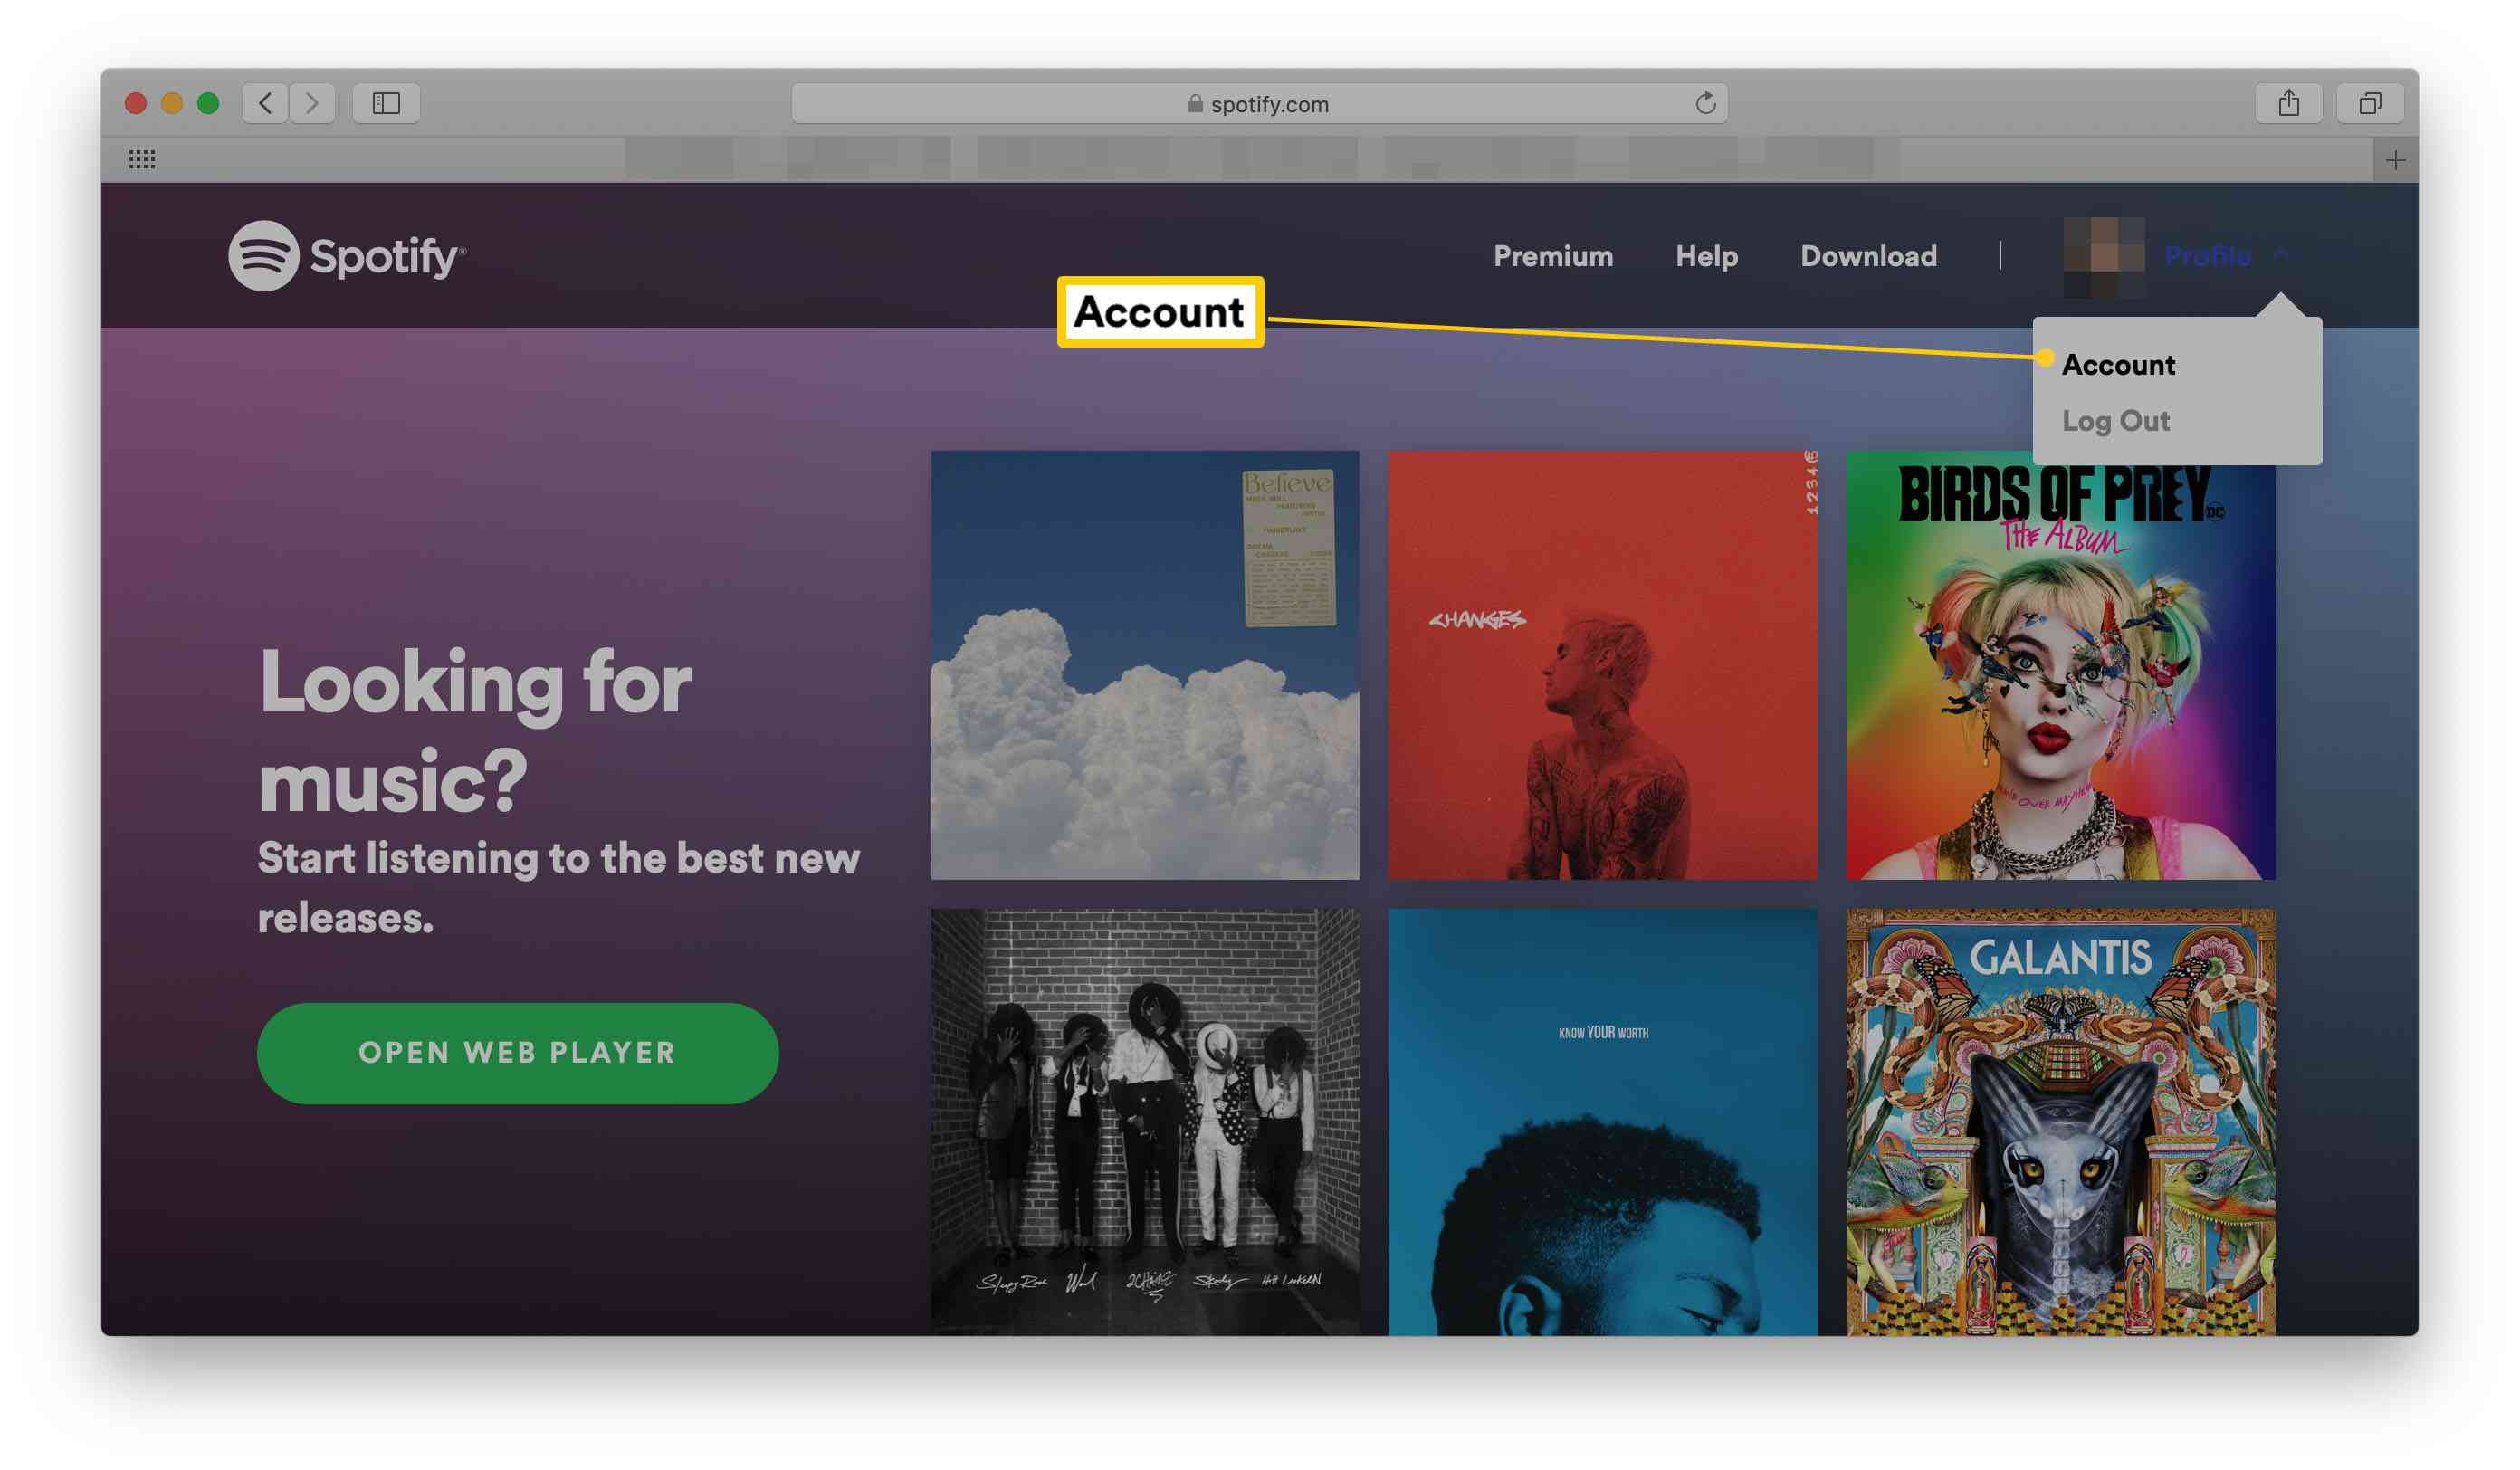 Spotify homepage with Account highlighted